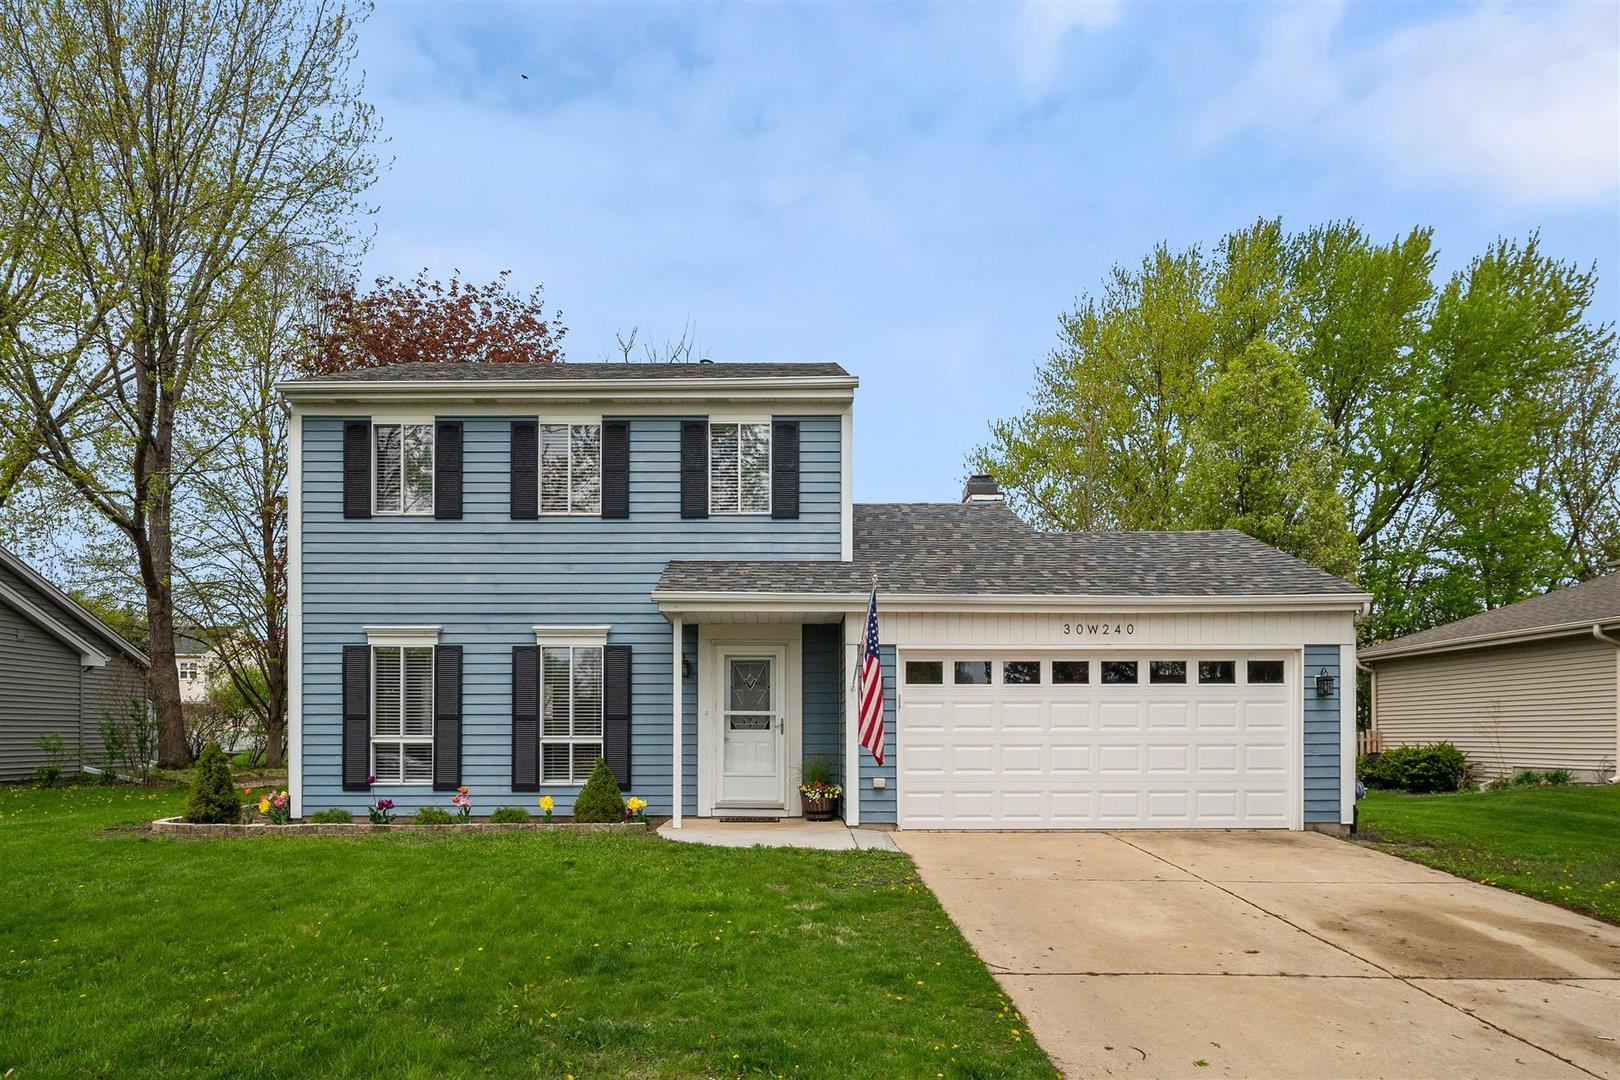 30w240 Leominster Court, Warrenville, IL 60555 - #: 11065506